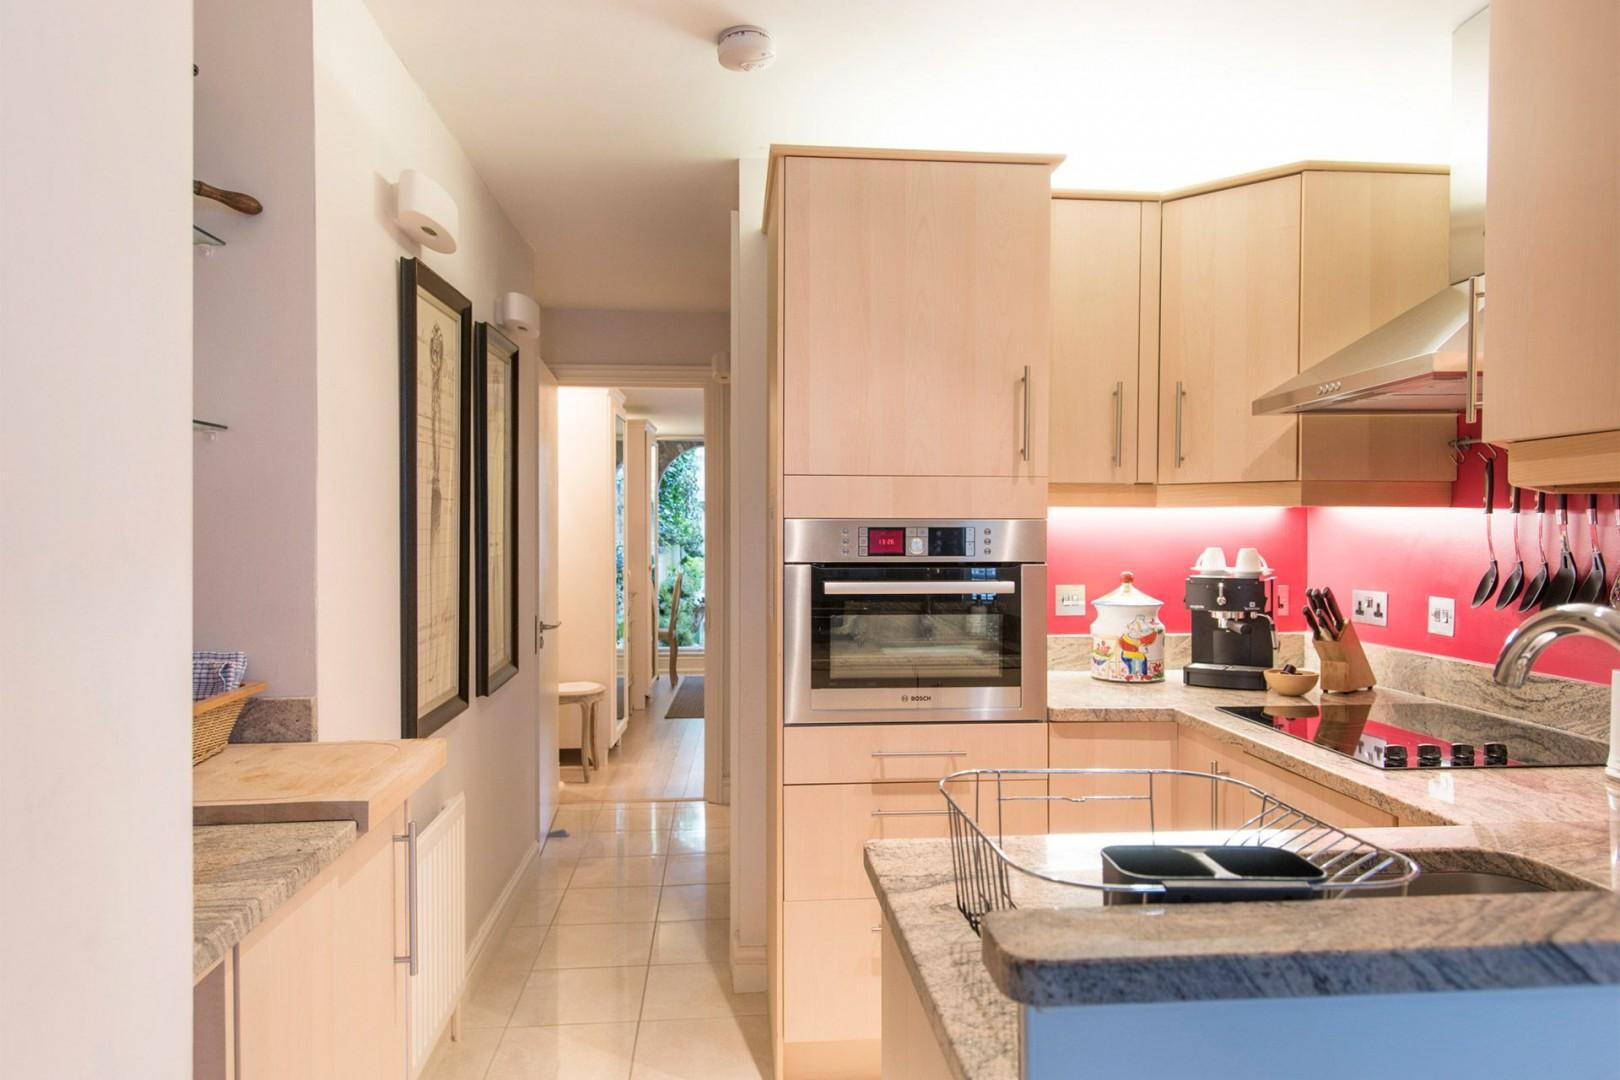 The fully equipped kitchen has every appliance you need